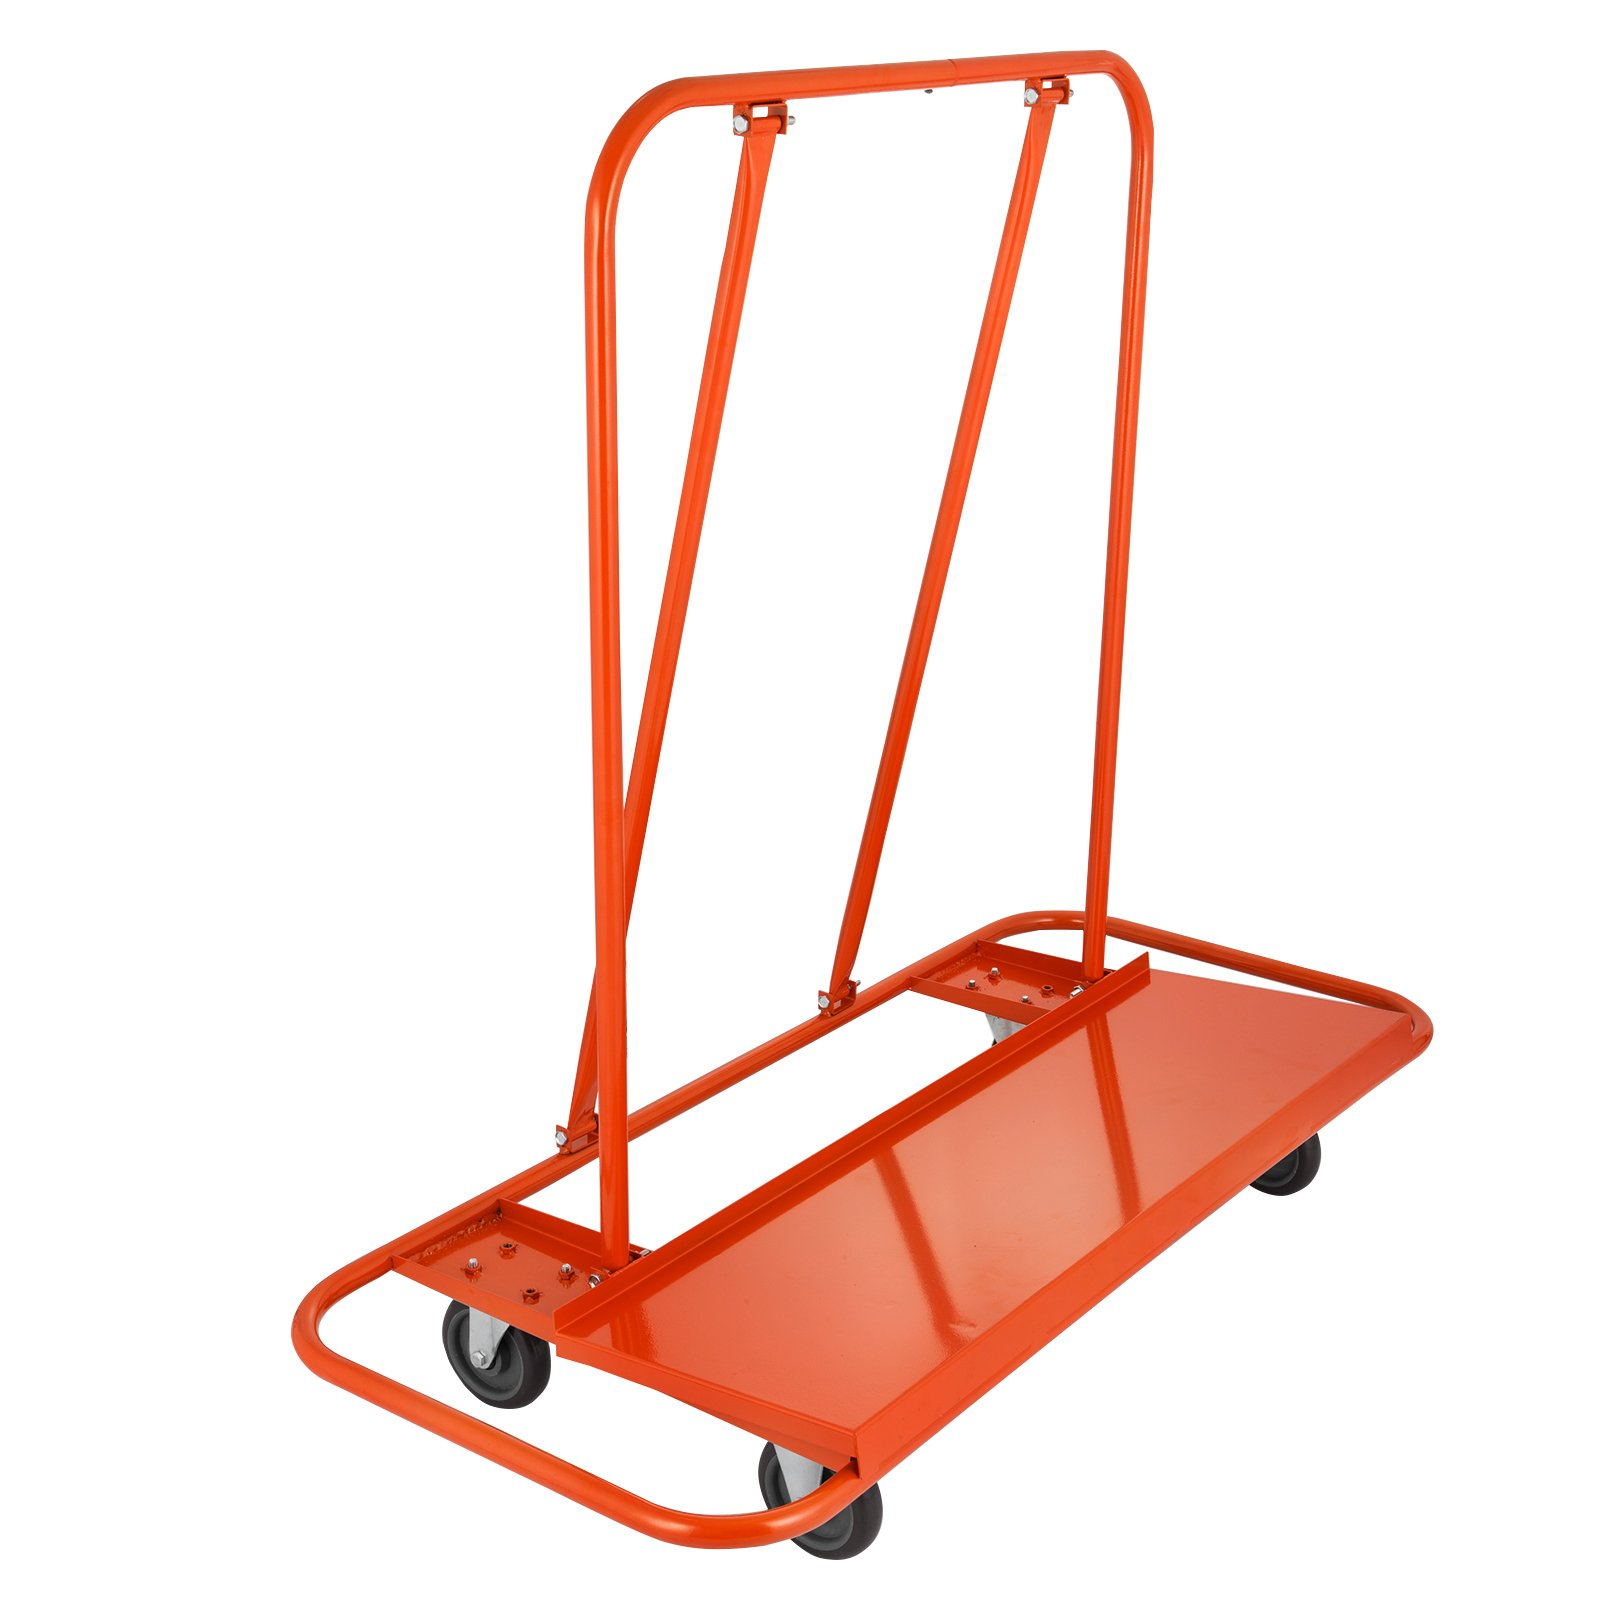 BestEquip Drywall Cart Capacity Drywall Cart Dolly Utility Handling Sheetrock Panel 45 x 12 Inch Deck Size (2000lbs)